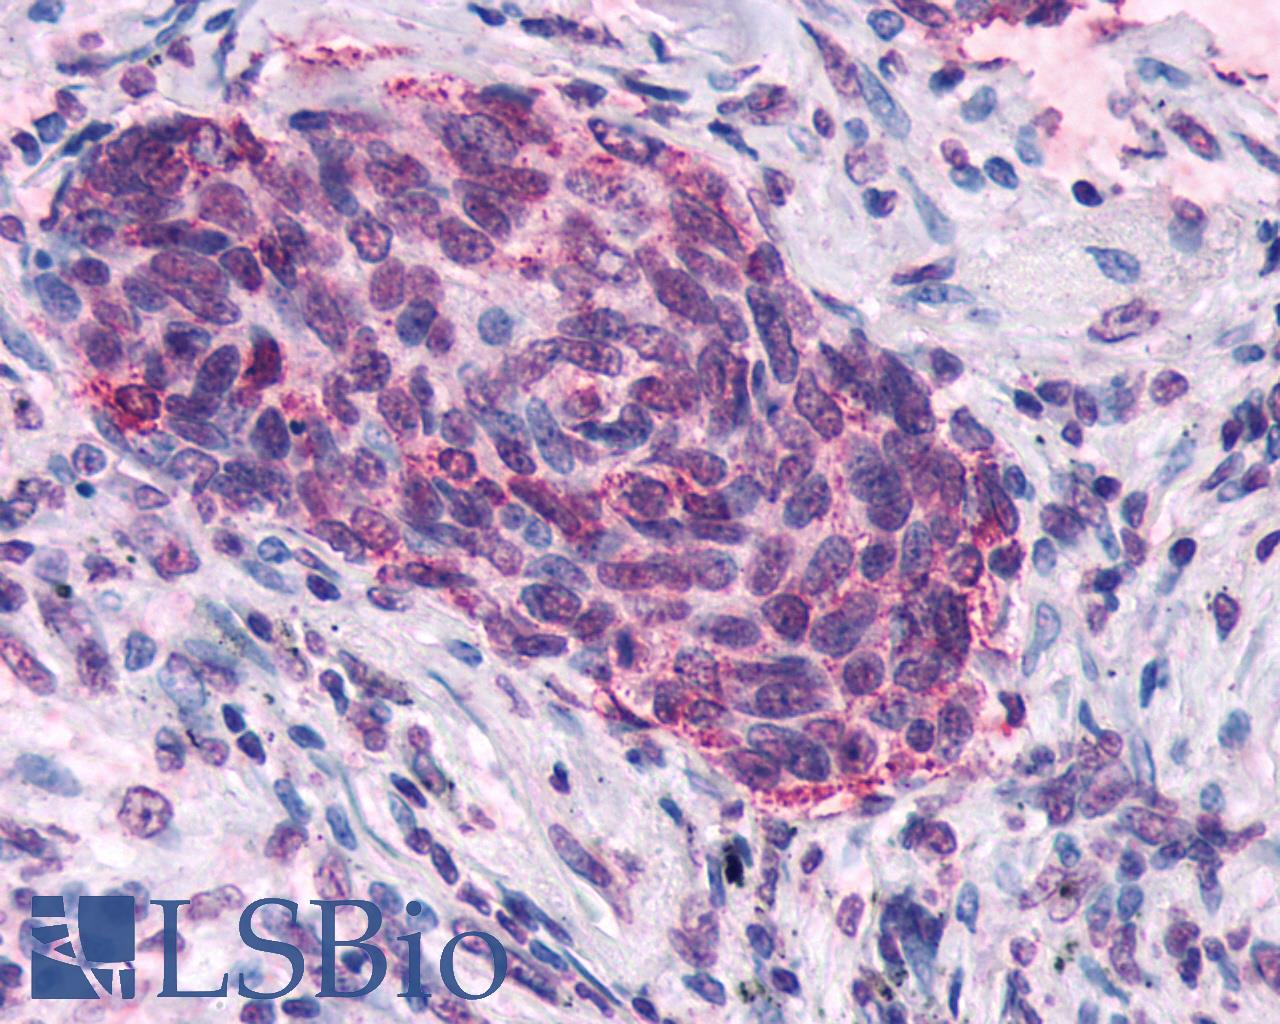 SSTR5 Antibody - Anti-SSTR5 antibody IHC of human Lung, Small Cell Carcinoma. Immunohistochemistry of formalin-fixed, paraffin-embedded tissue after heat-induced antigen retrieval.